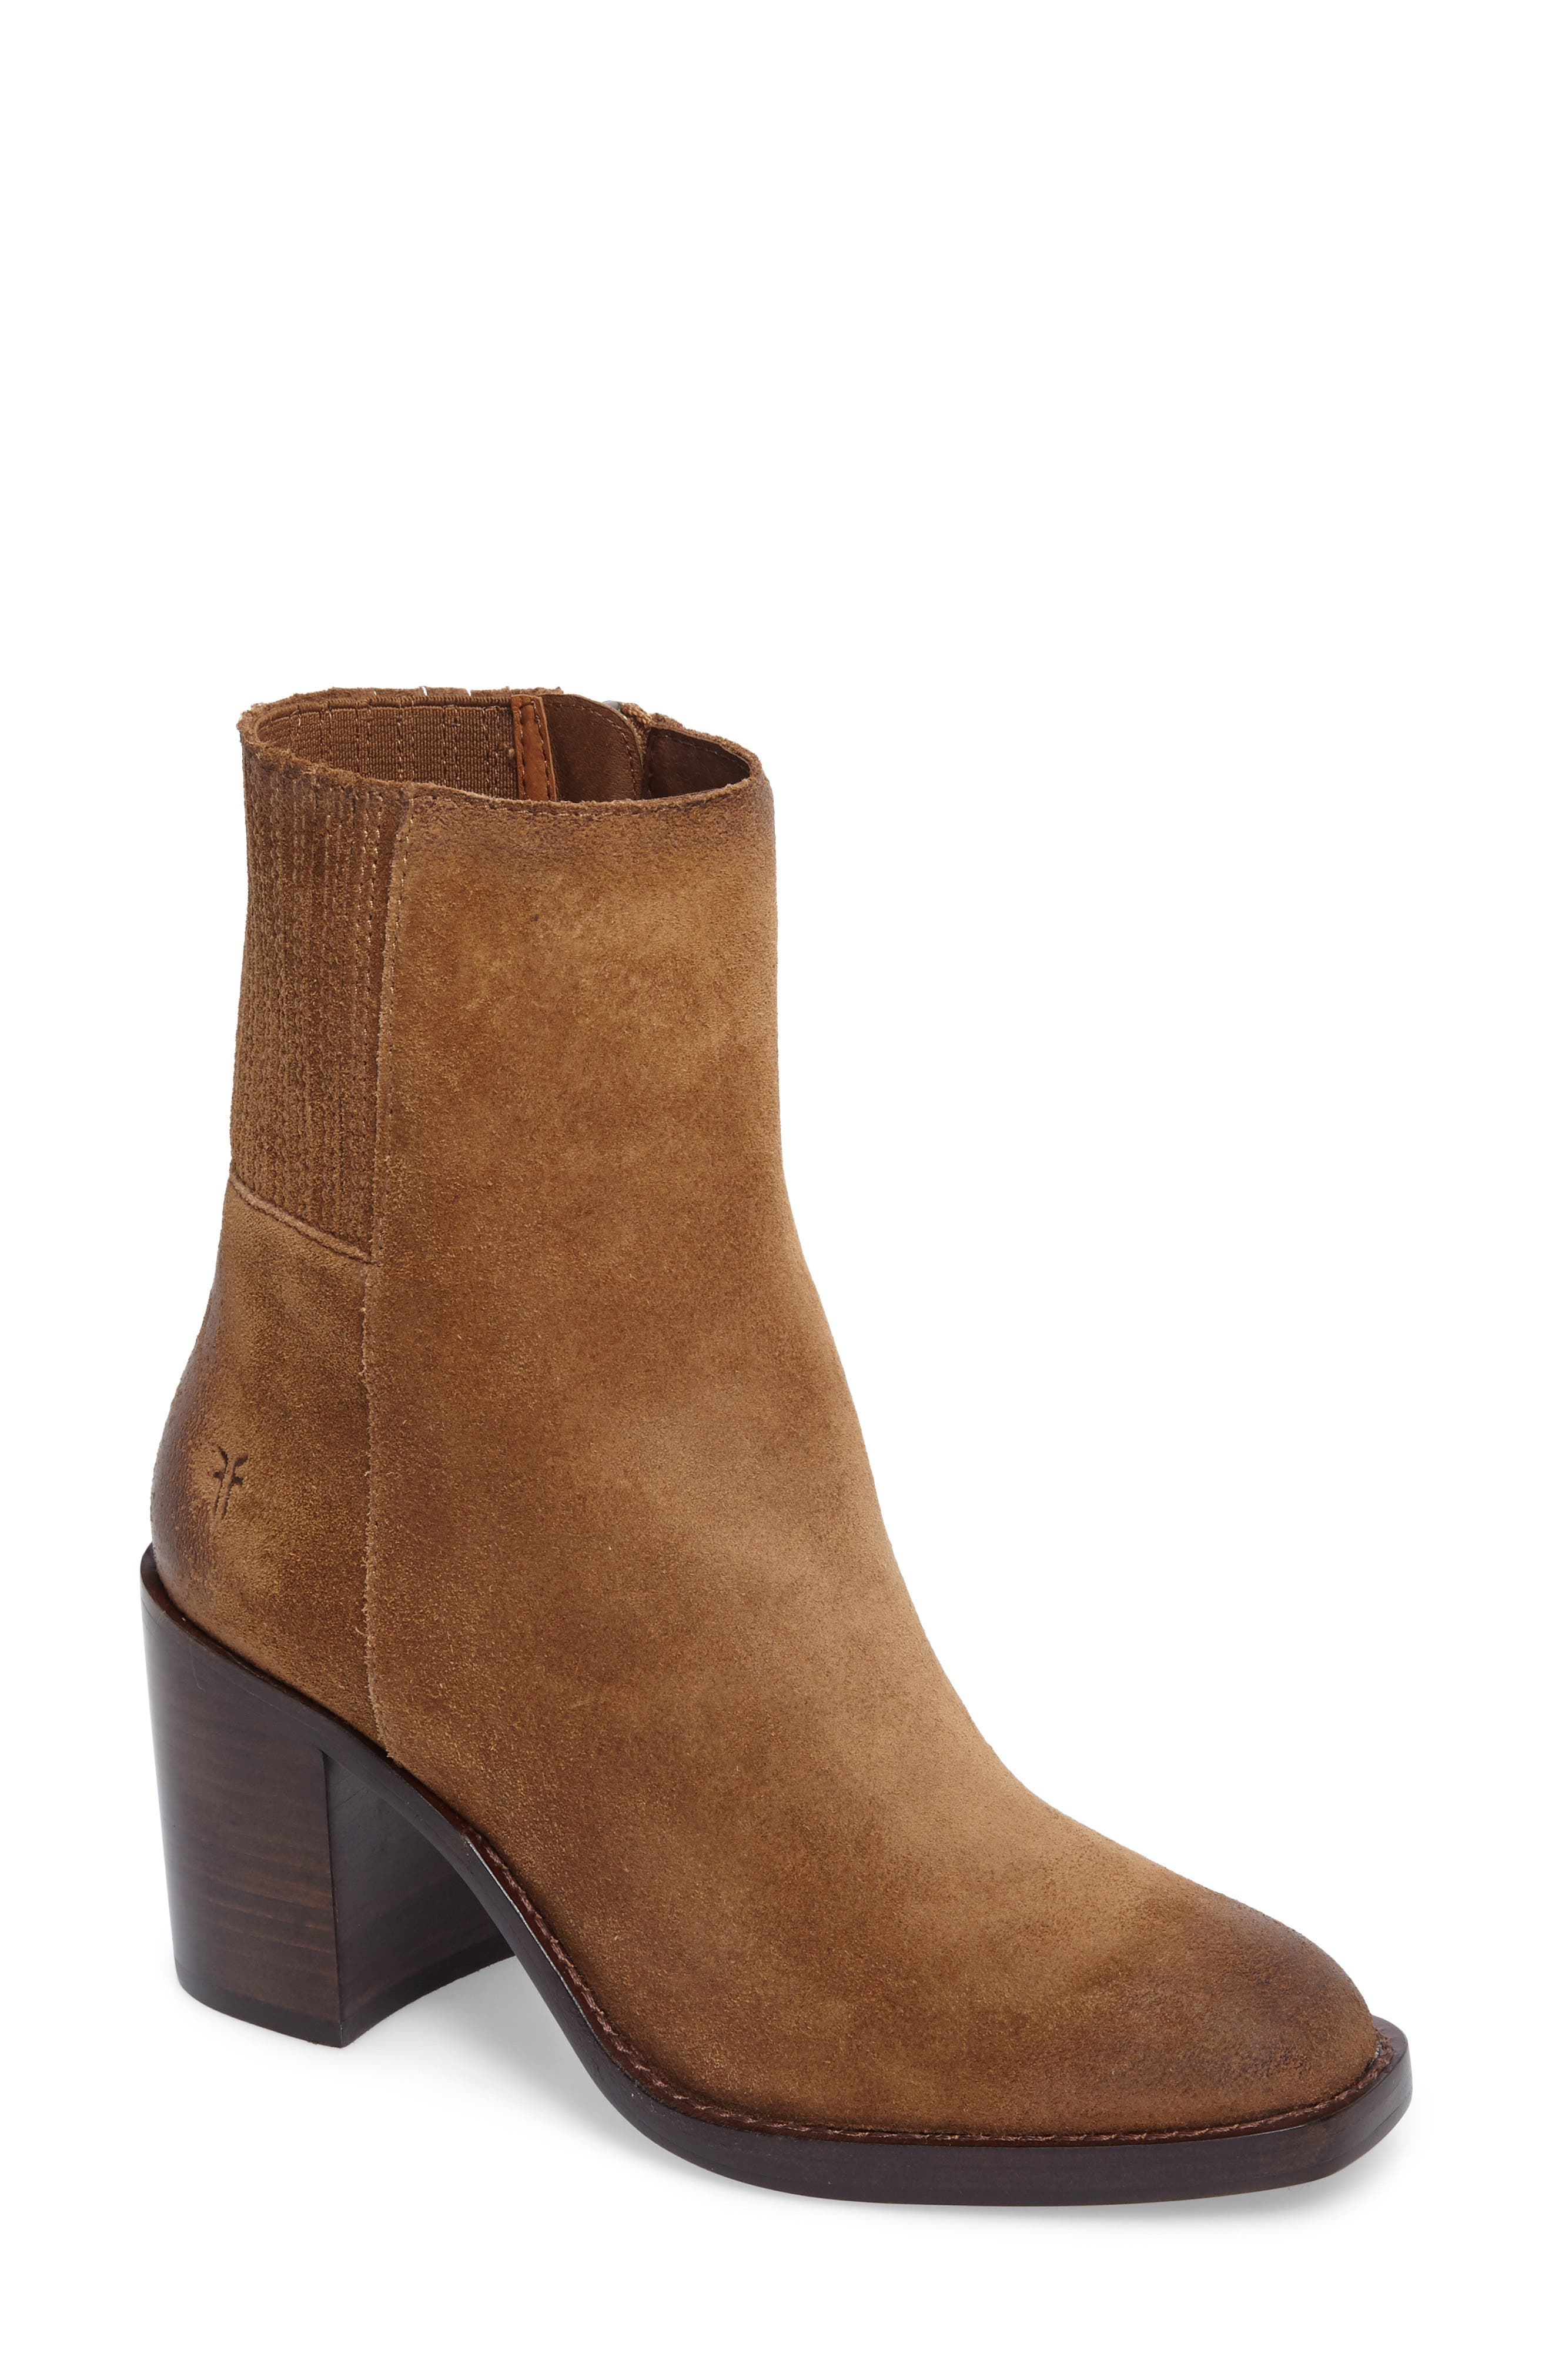 Pia Boot,                         Main,                         color, Chestnut Suede